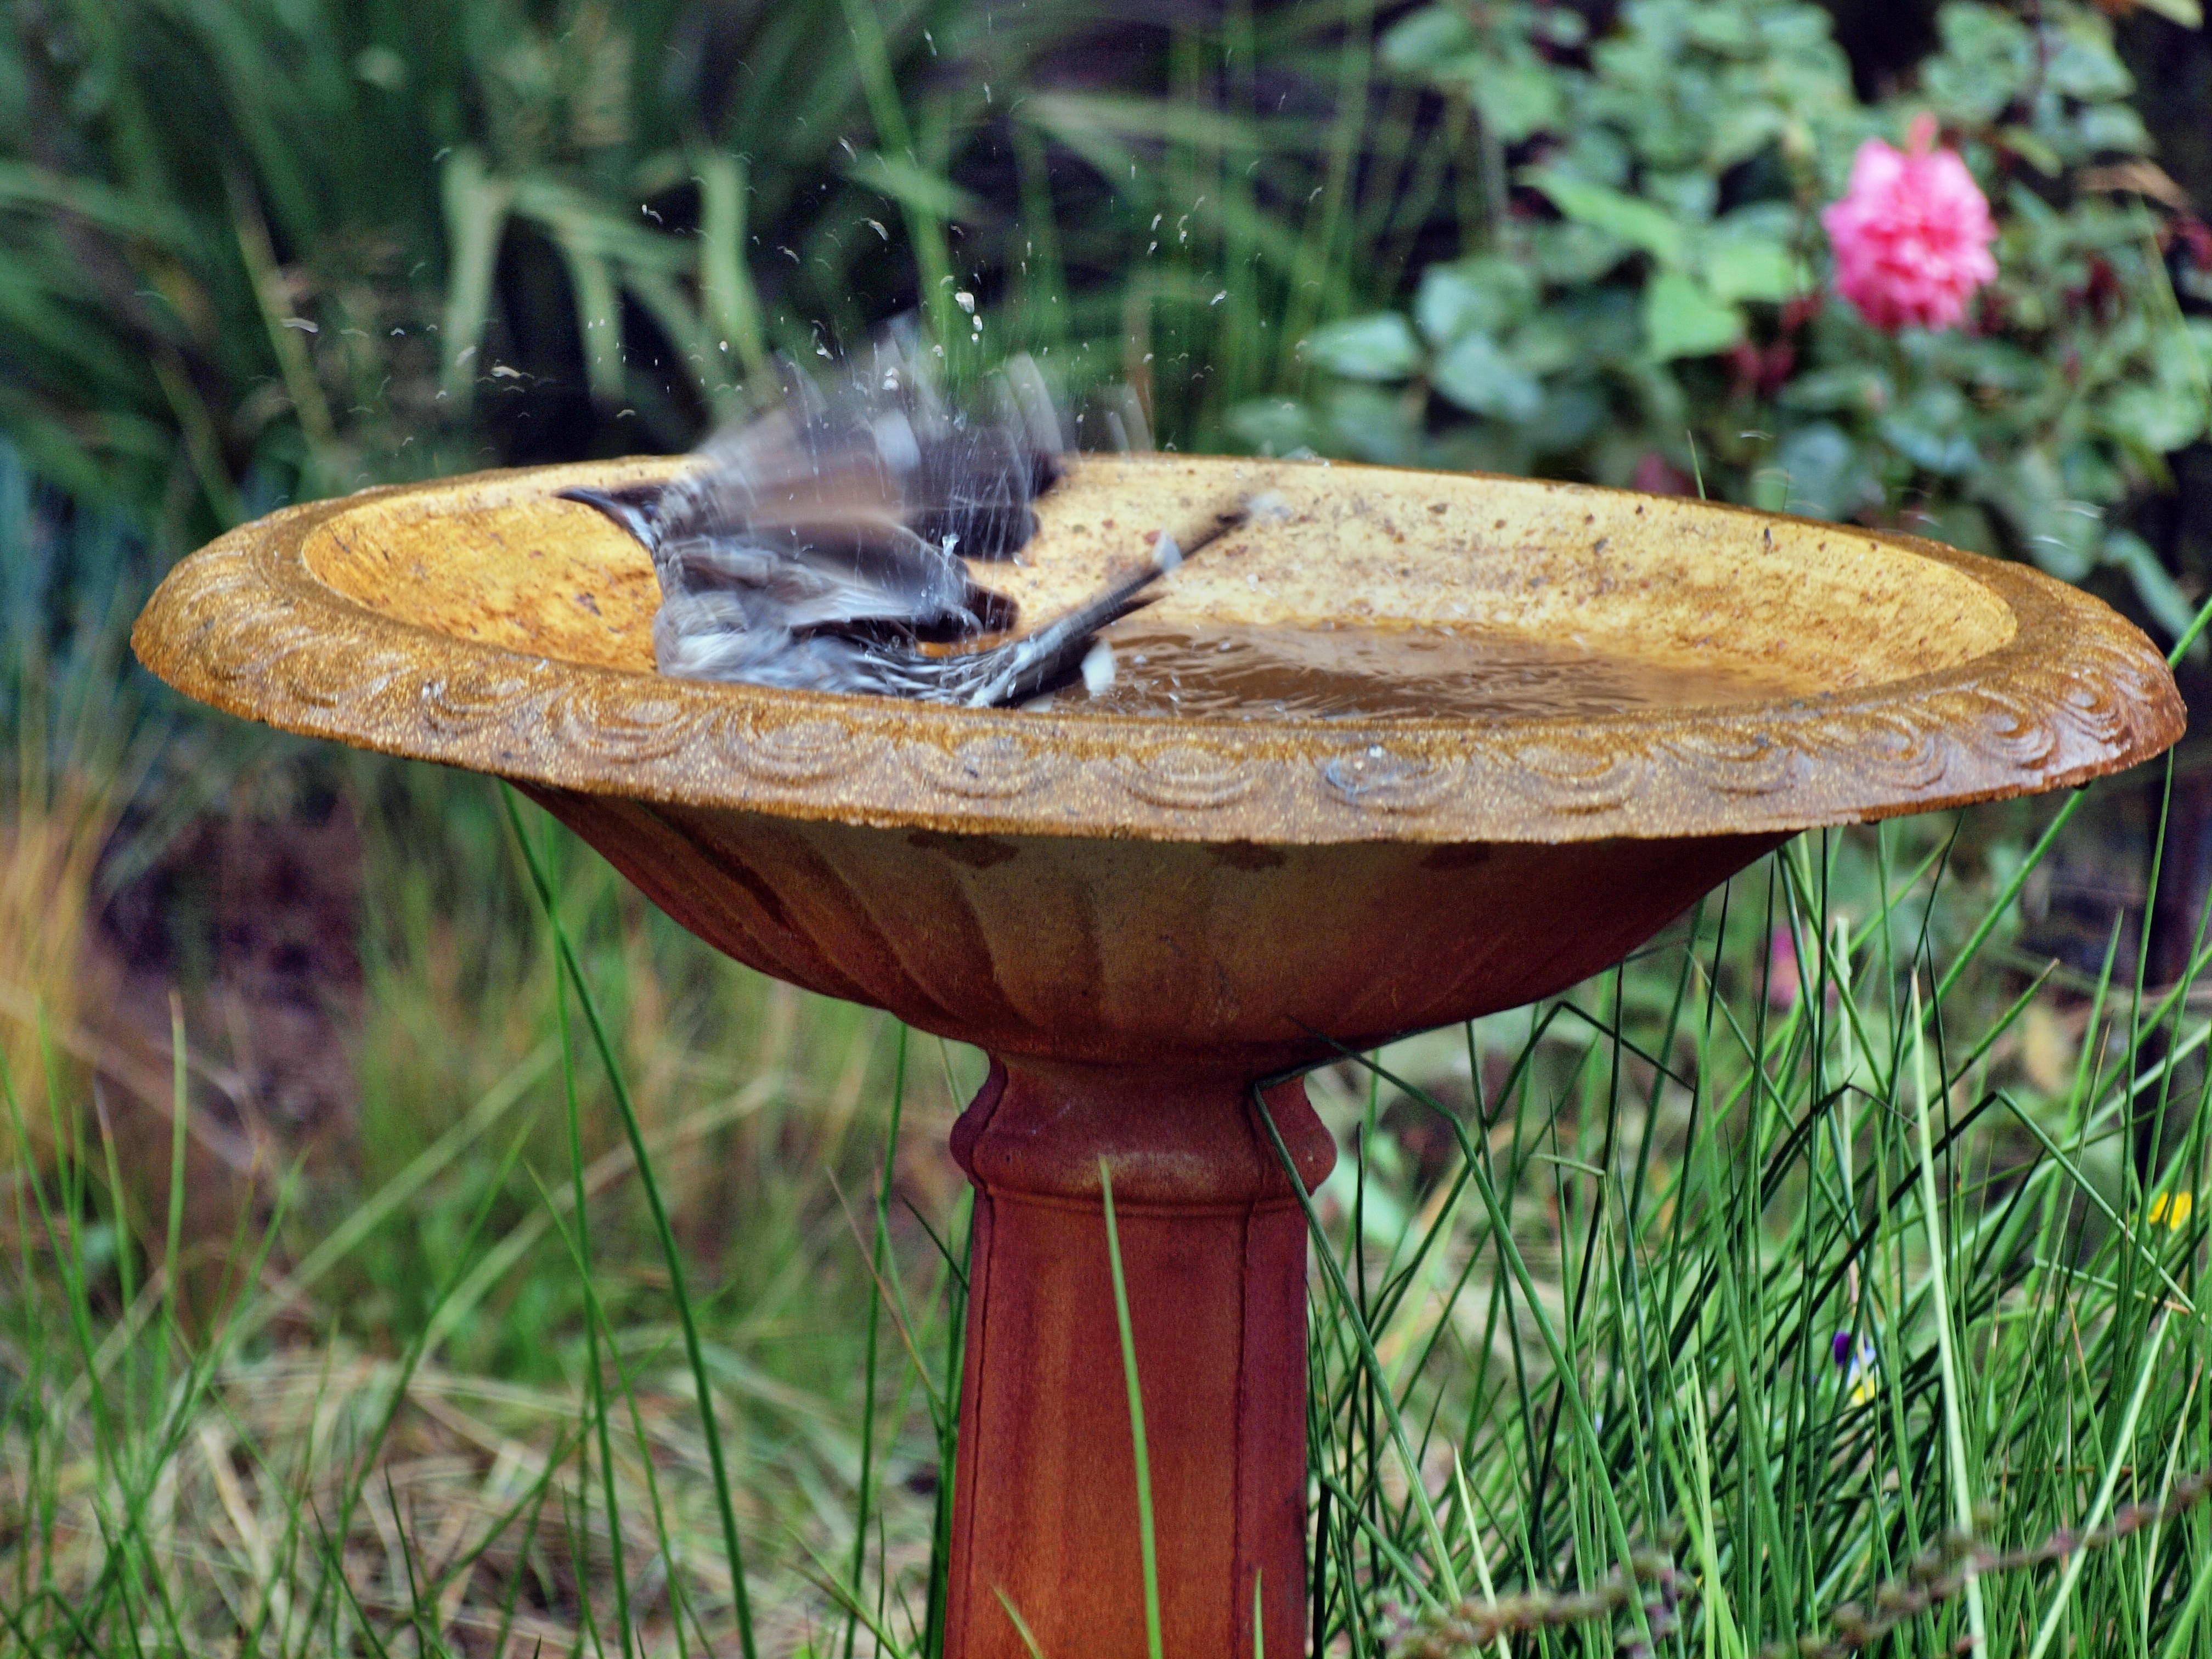 Bird-bath-8.jpeg